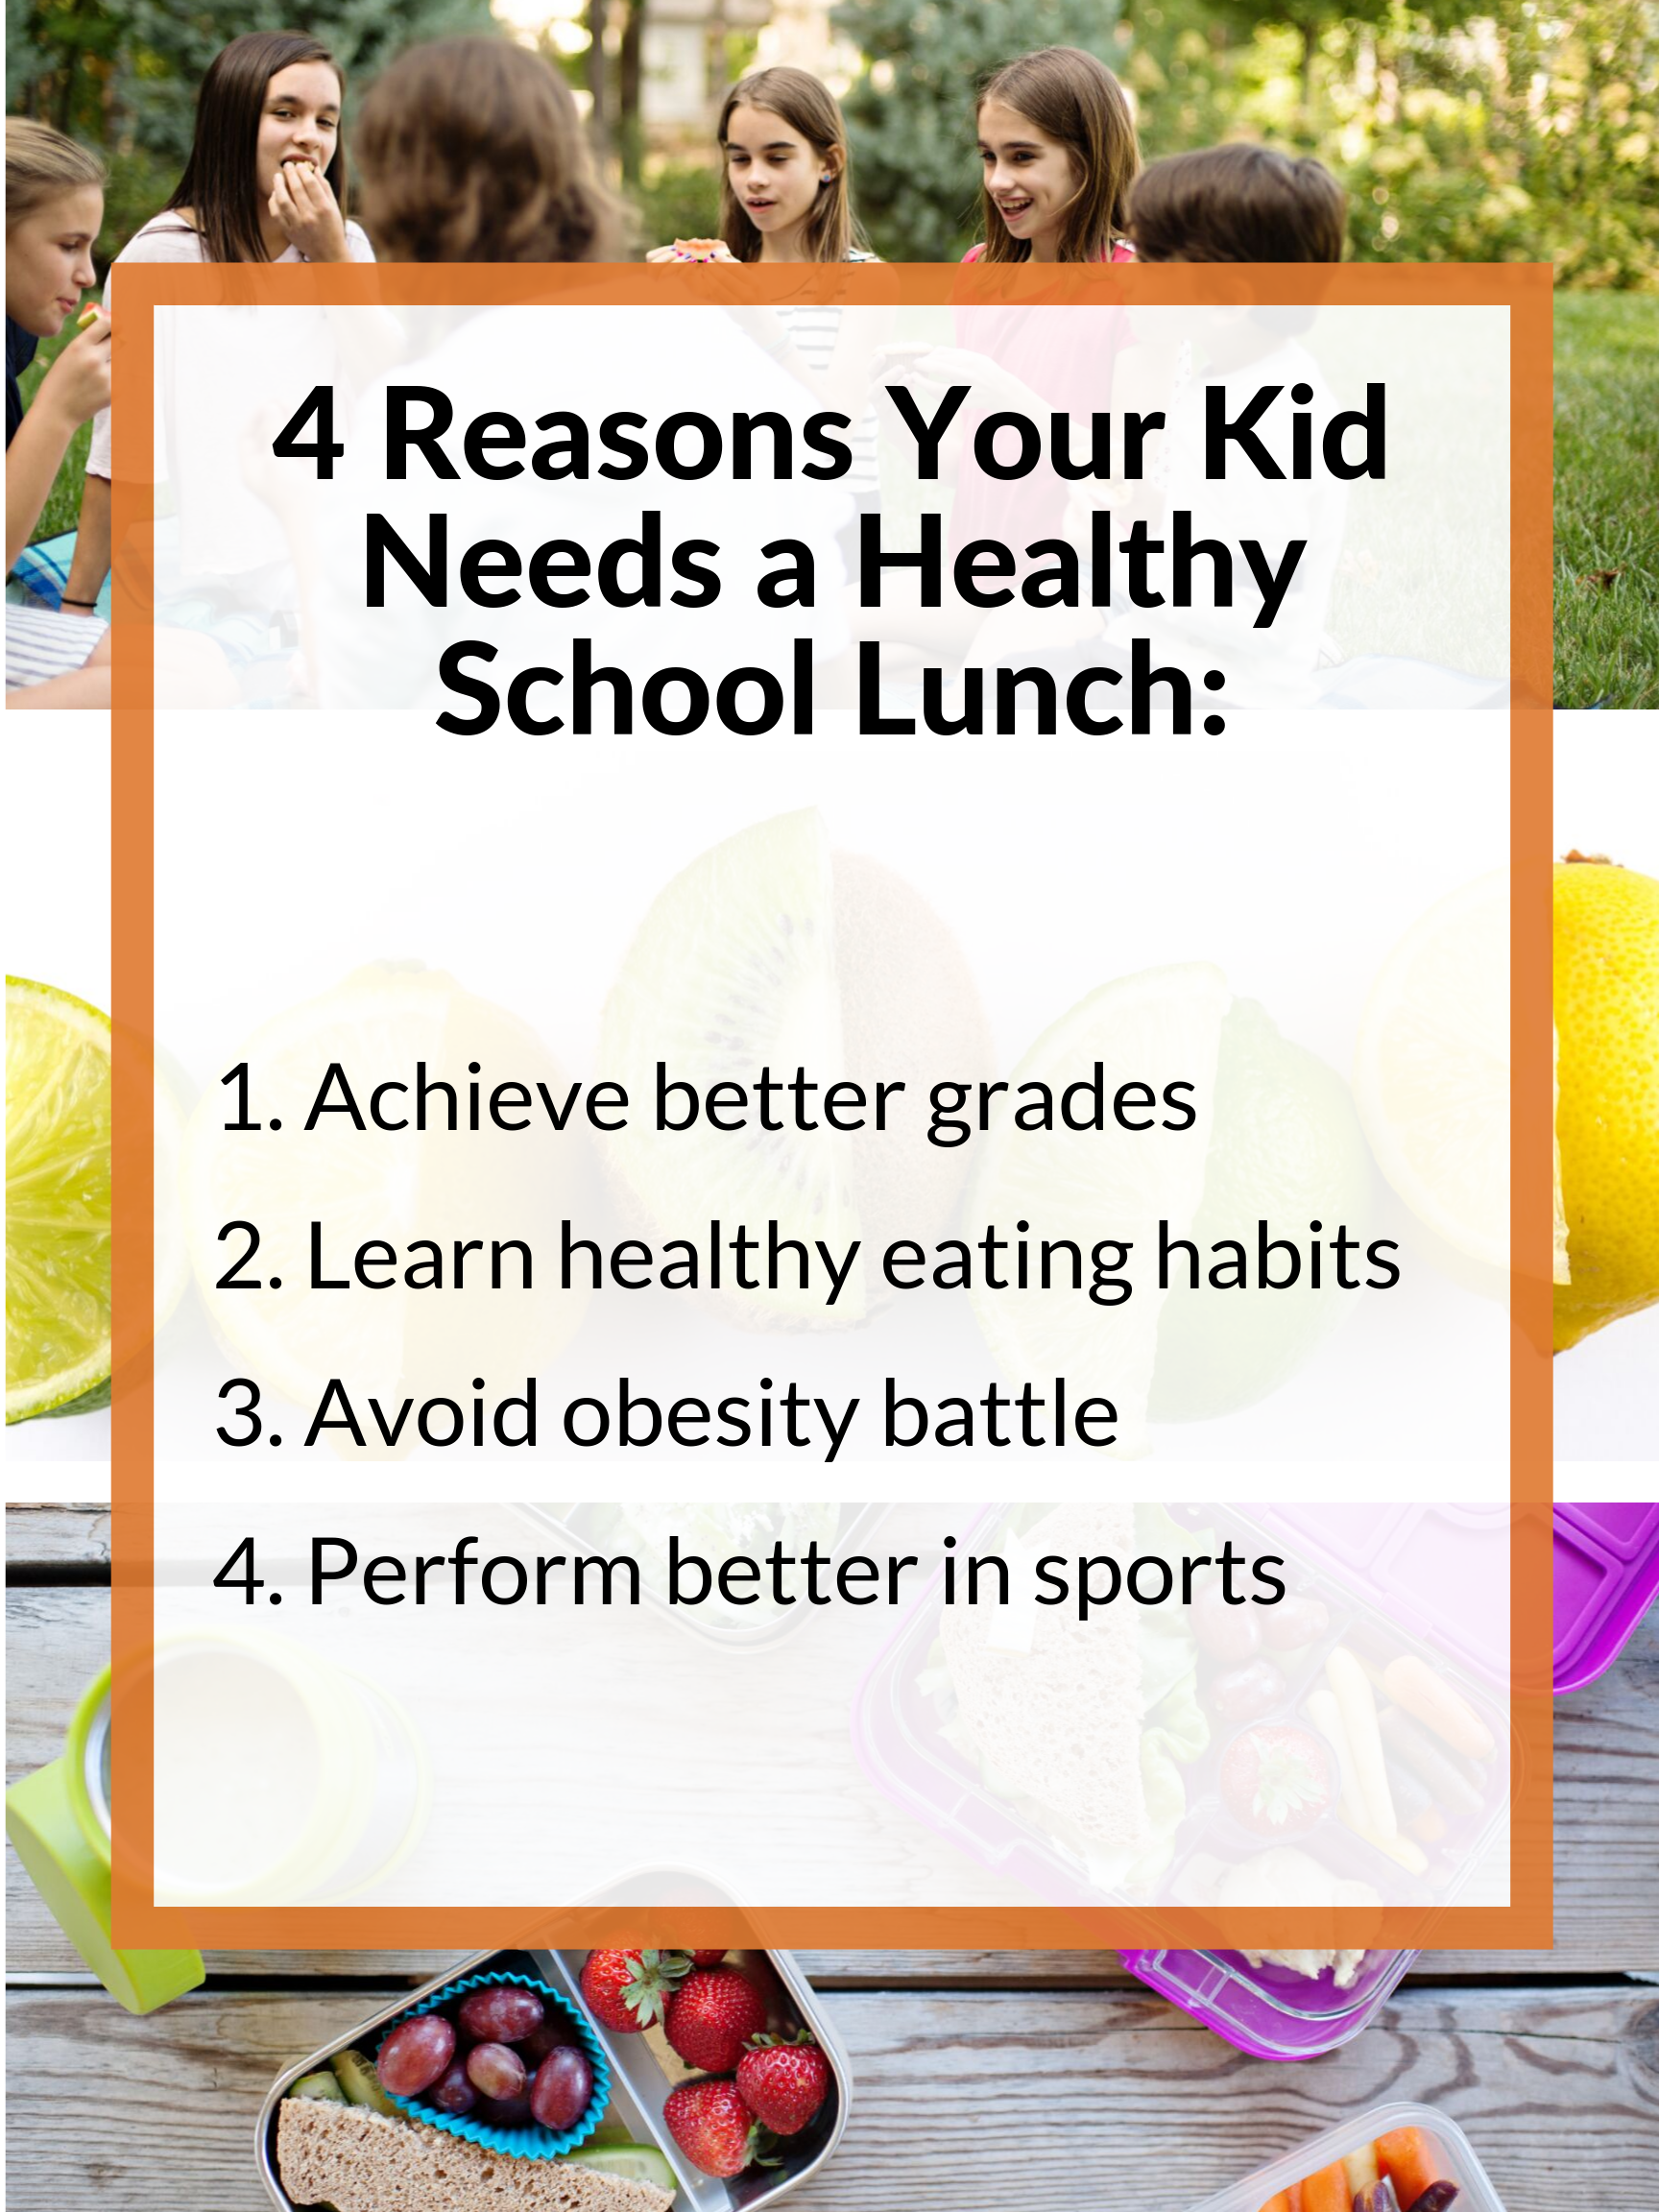 4 reasons your kid needs a healthy school lunch_presents